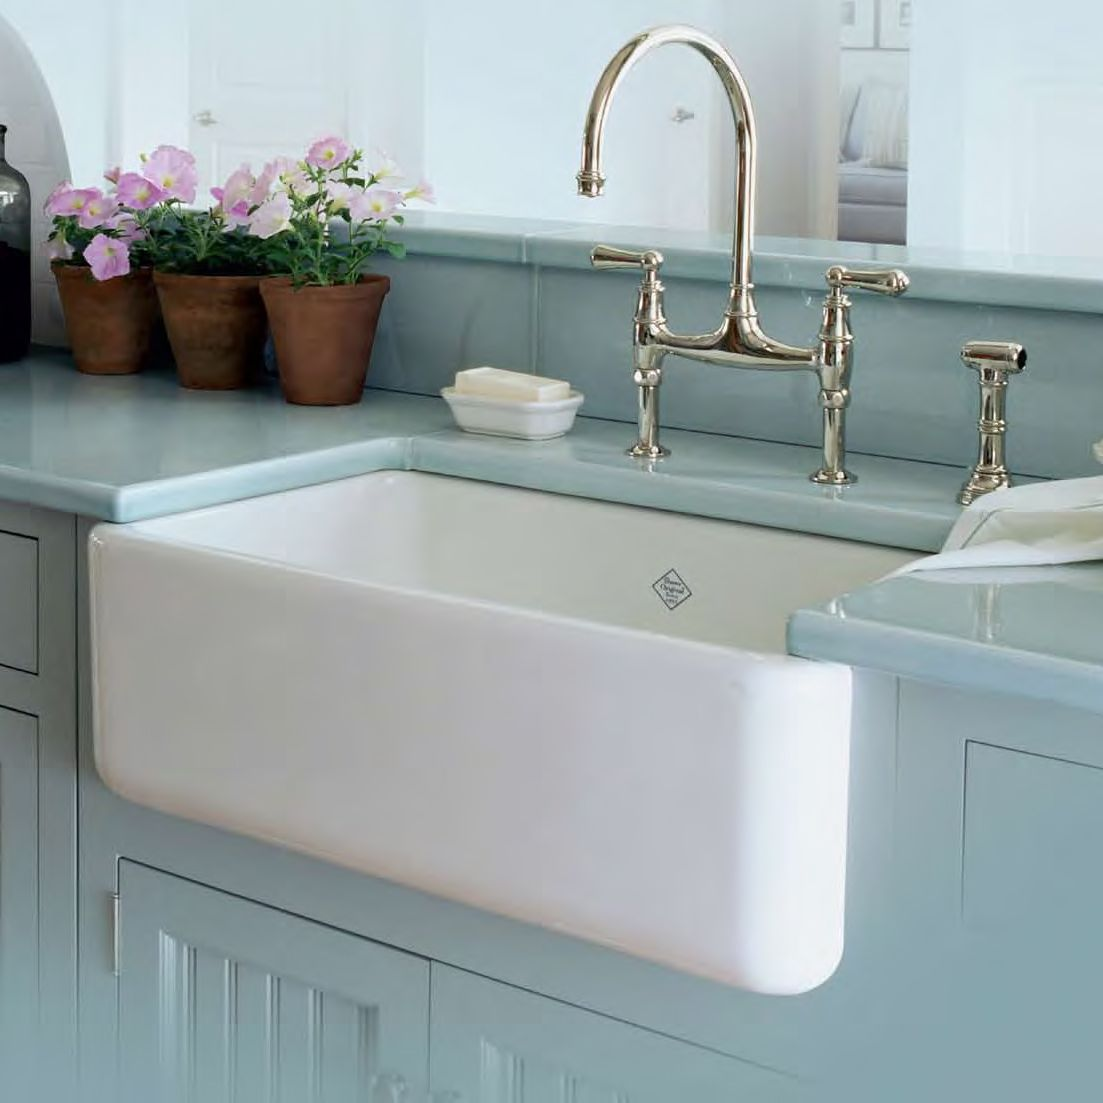 Rohl Shaws 33 Fireclay Farmhouse Apron Sink White Rc3318wh The Sink Boutique